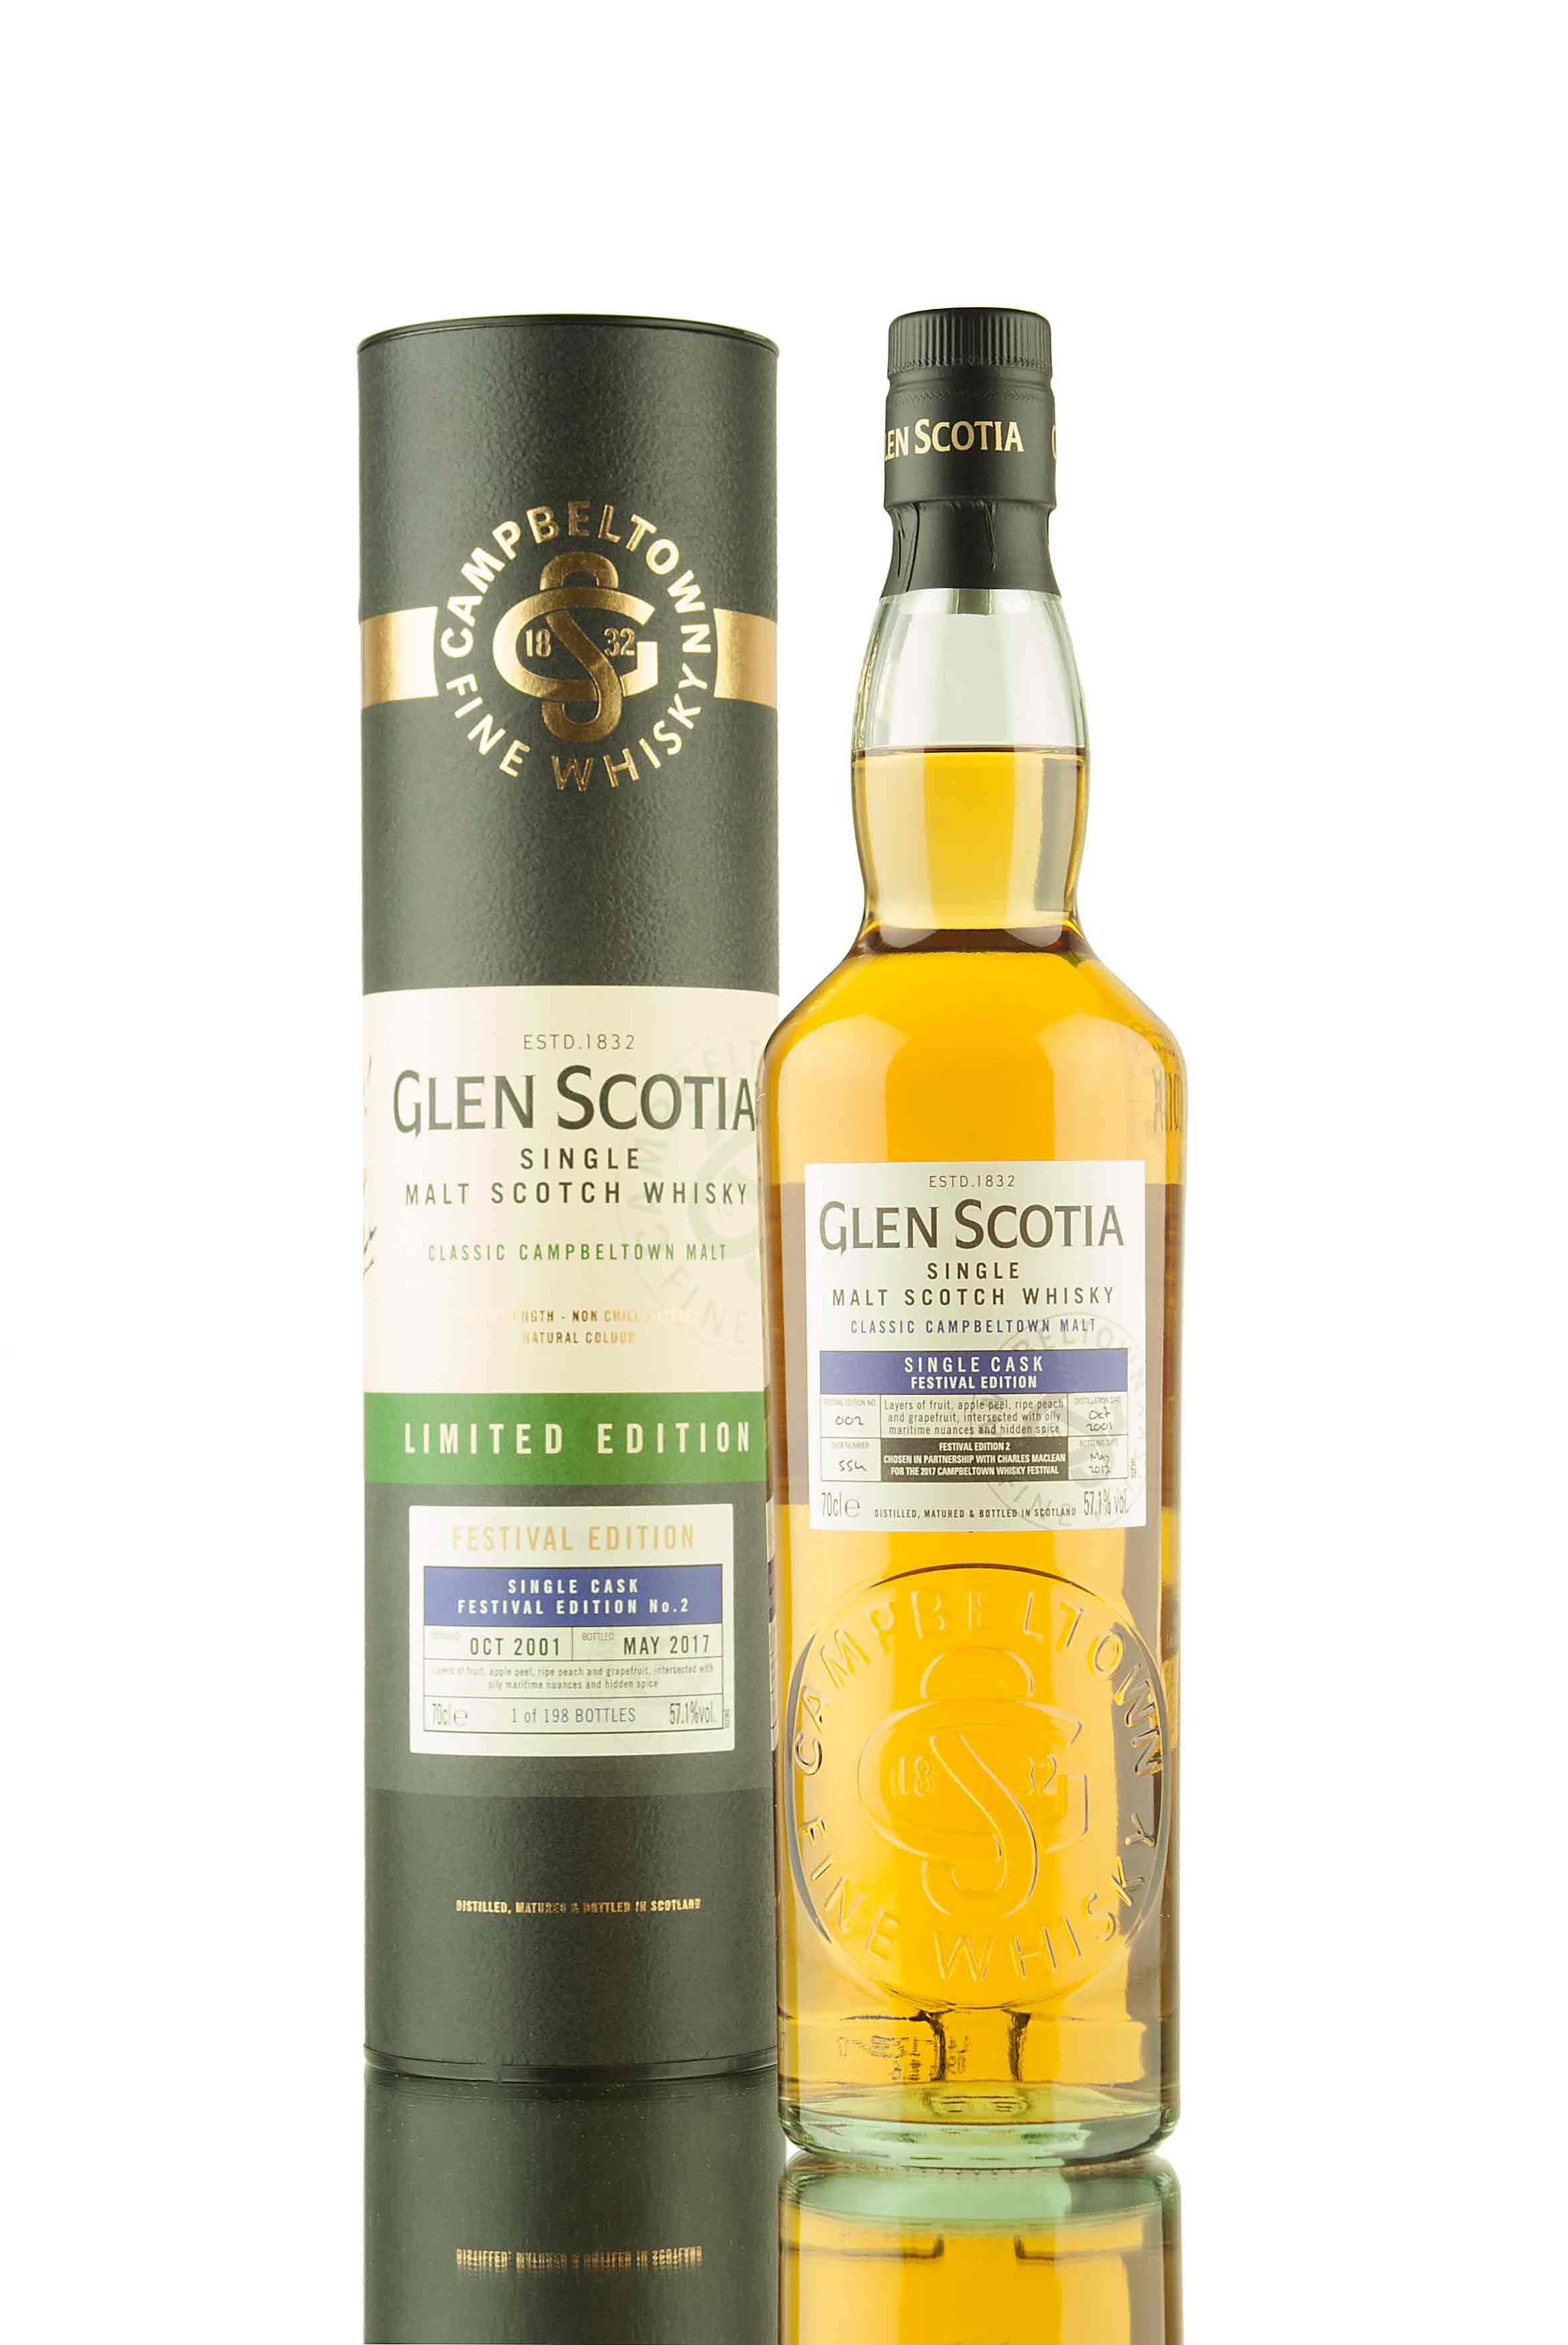 Glen Scotia 15 Year Old - 2001 | Cask 554 | Festival Edition 2